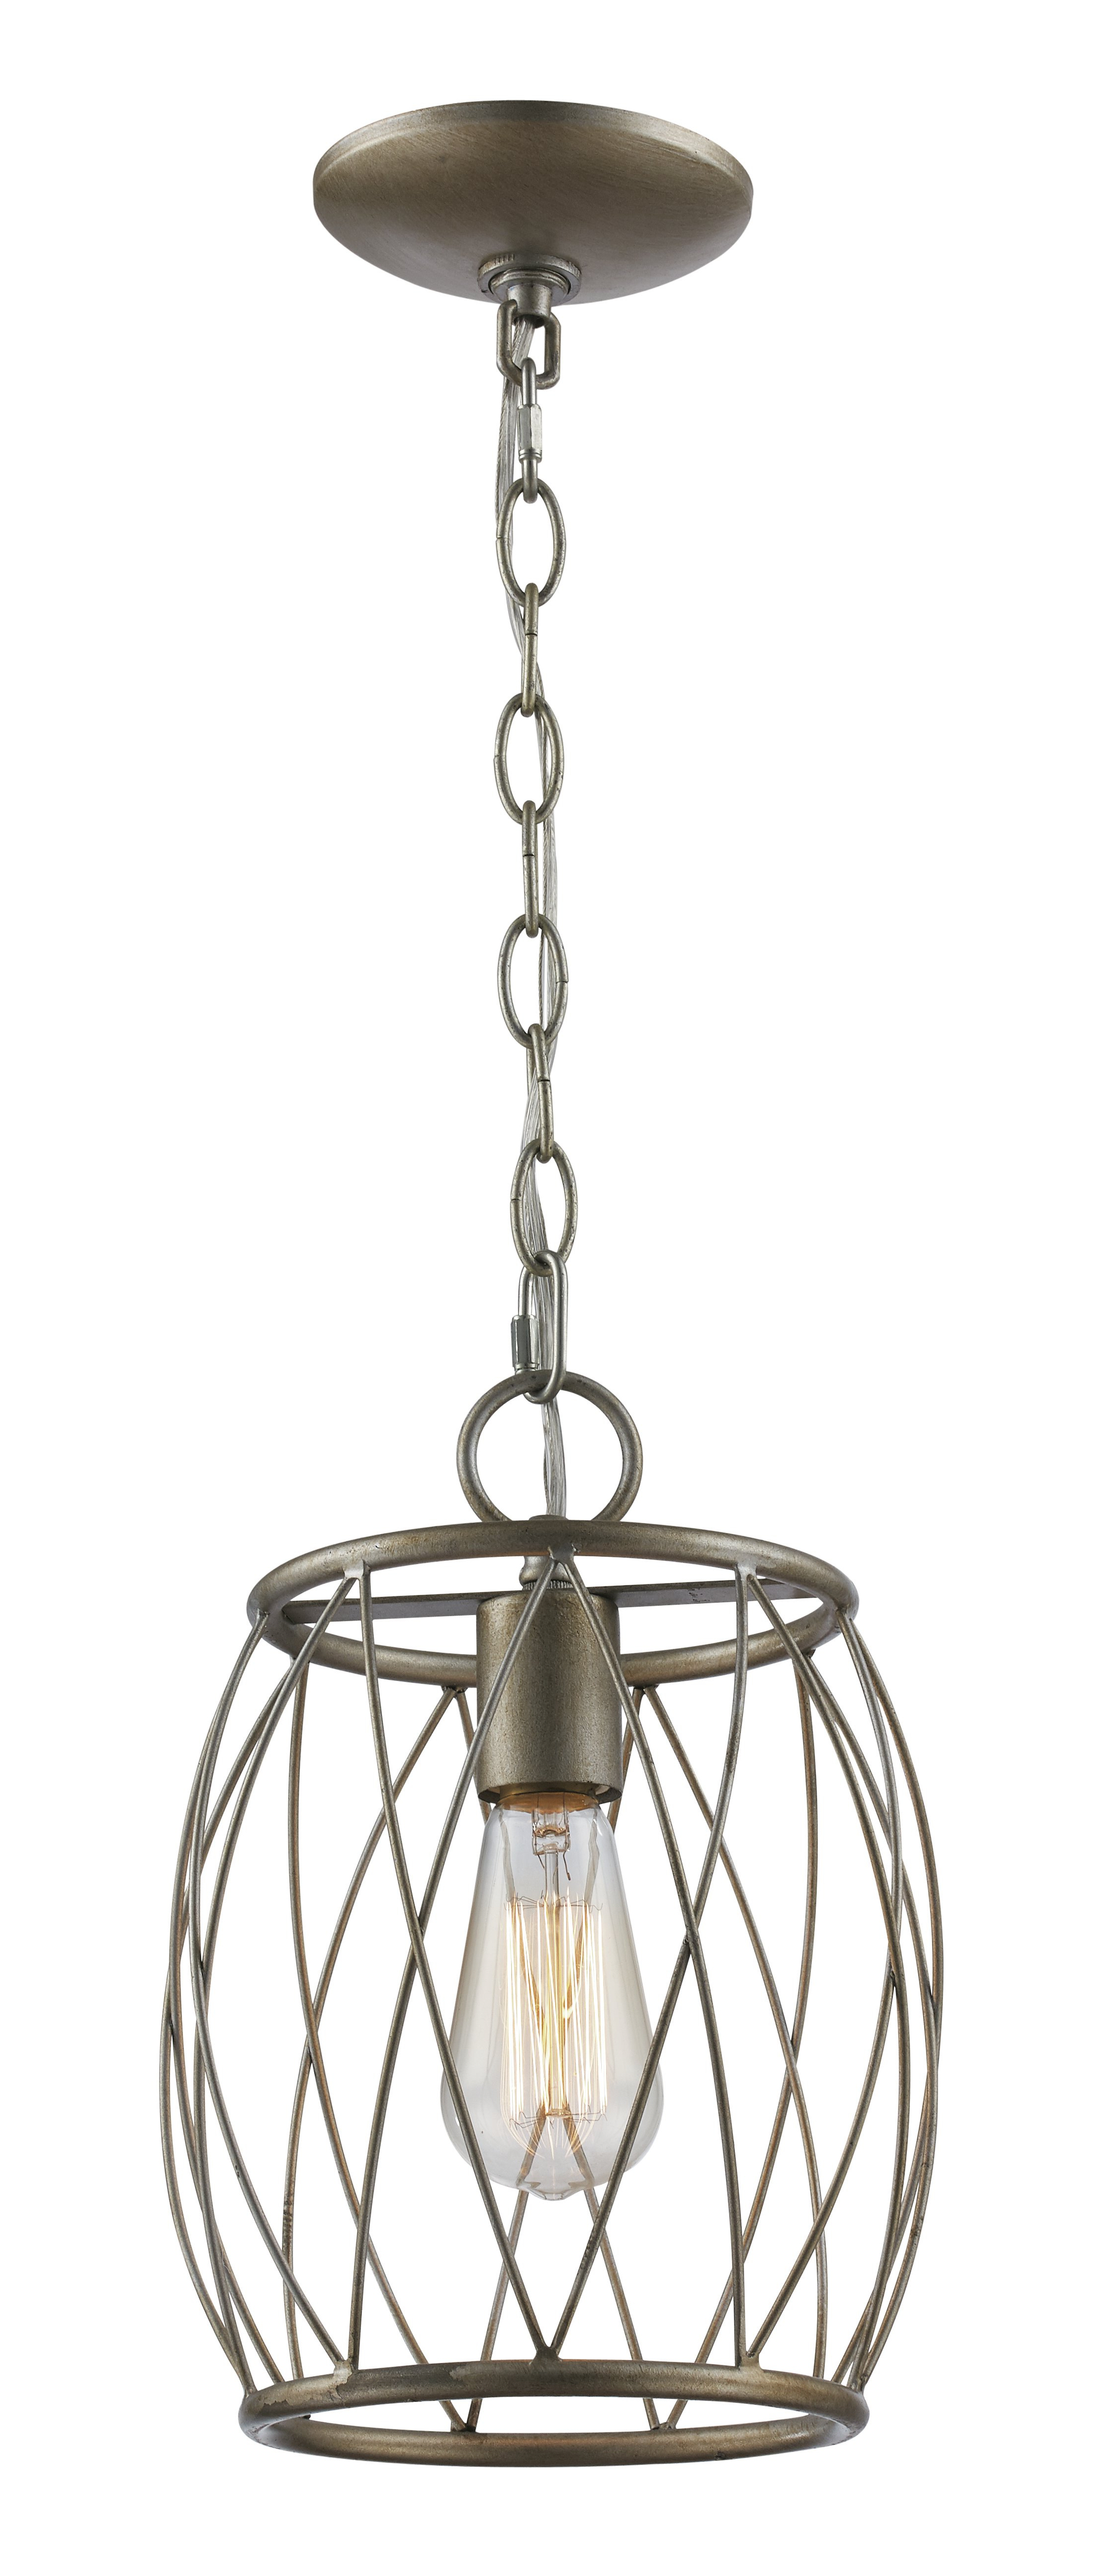 Poynter 1 Light Single Cylinder Pendant In Most Up To Date Poynter 1 Light Single Cylinder Pendants (Gallery 2 of 20)